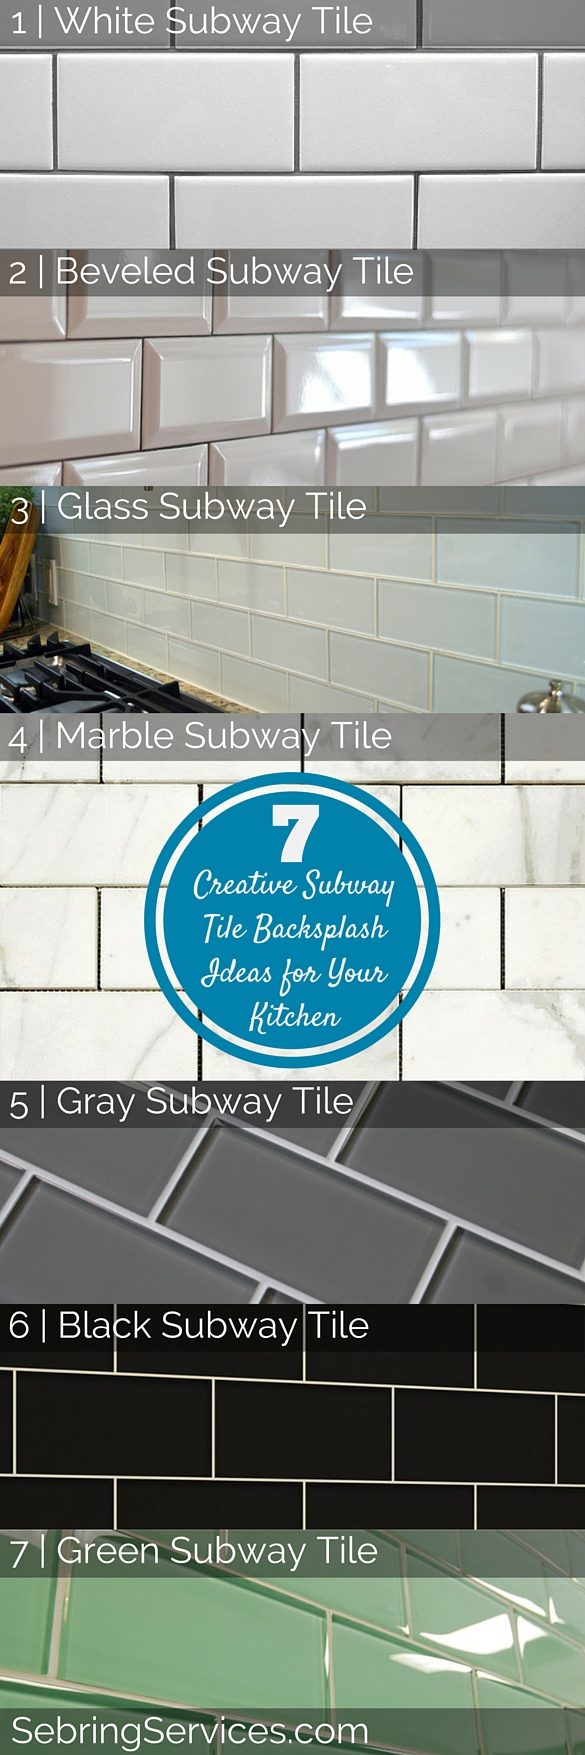 Miraculous 7 Creative Subway Tile Backsplash Ideas For Your Kitchen Download Free Architecture Designs Crovemadebymaigaardcom